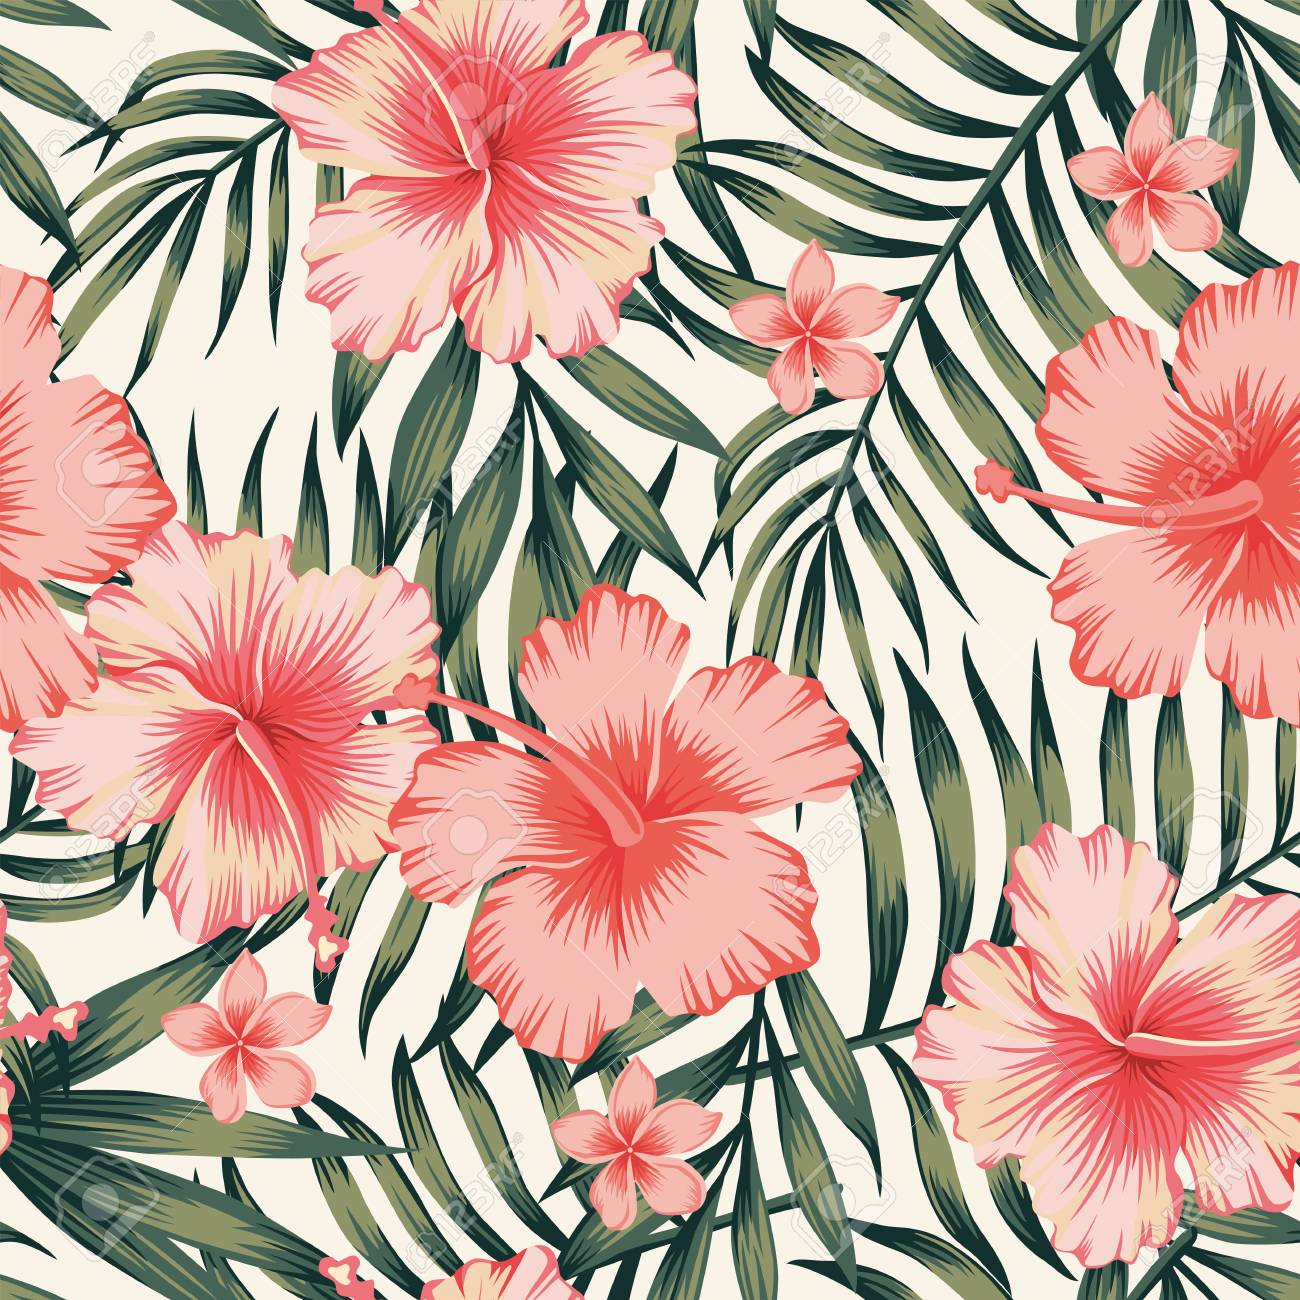 Tropical Flower With Palm Leaves Seamless Pattern Royalty Free Cliparts Vectors And Stock Illustration Image 91346039 Every day new pictures and just beautiful wallpaper for your desktop flowers completely free. tropical flower with palm leaves seamless pattern